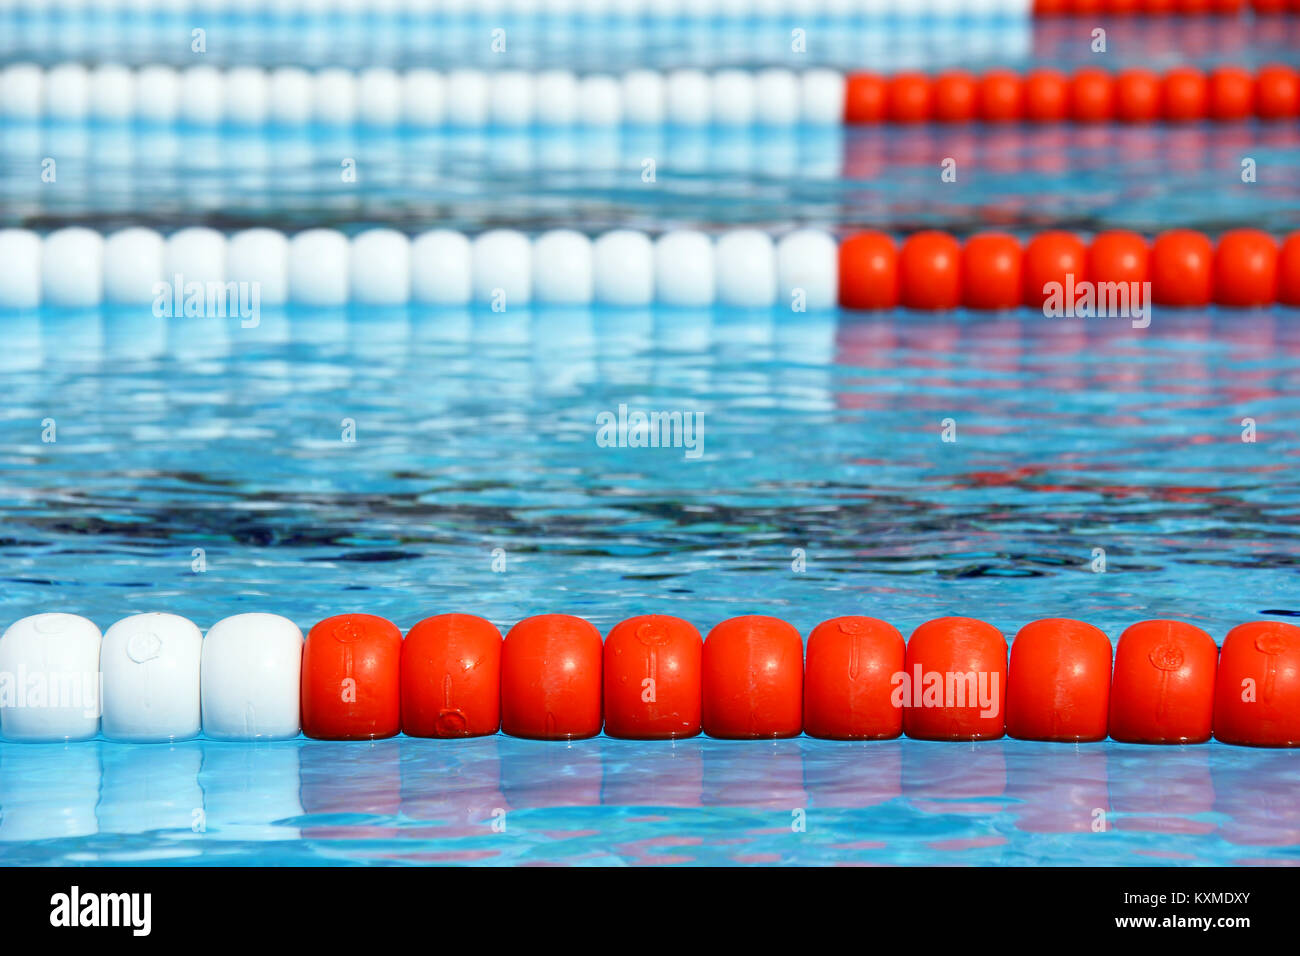 Swimming Pool Lane Rope Stock Photos & Swimming Pool Lane ...